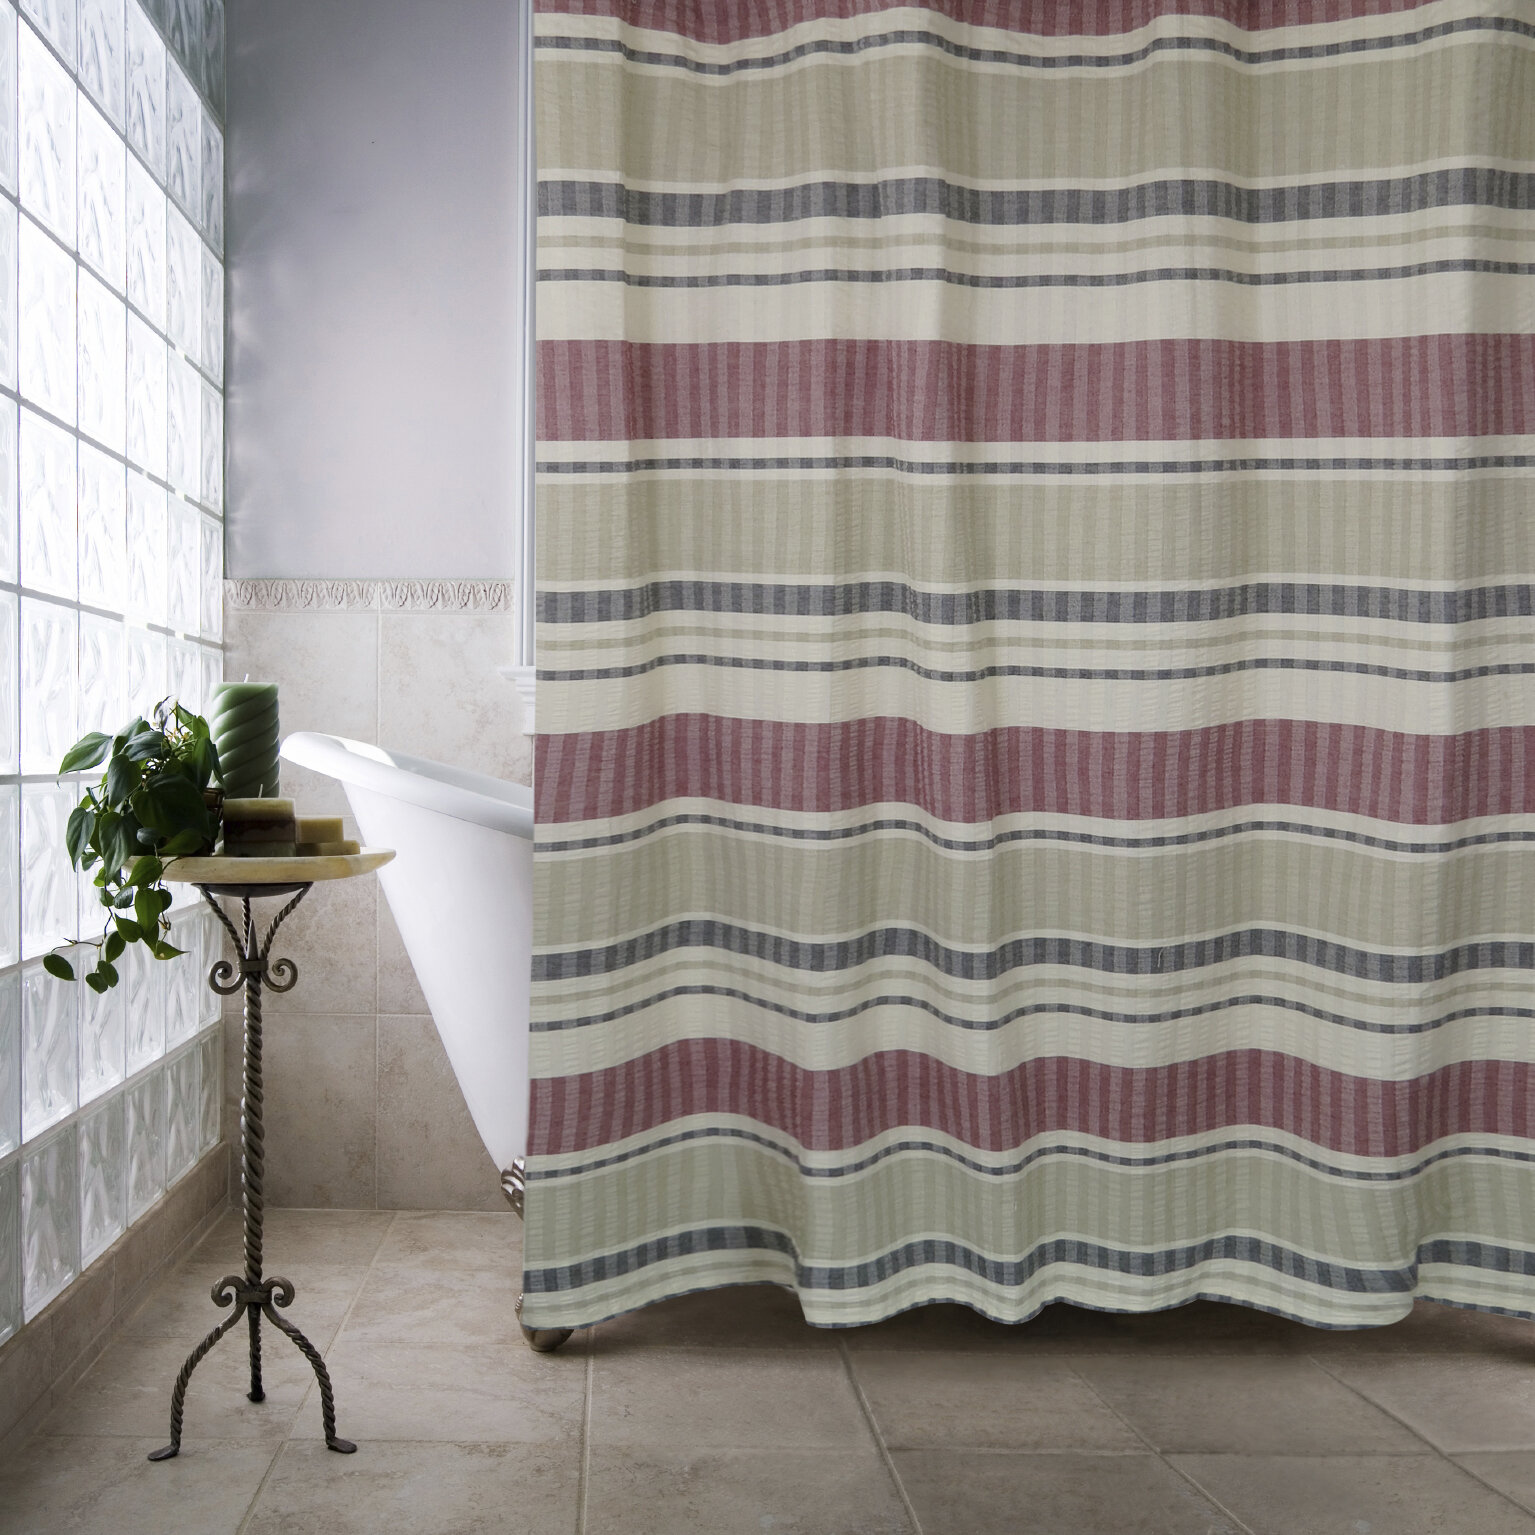 Metro farmhouse cotton seersucker bands single shower curtain reviews birch lane